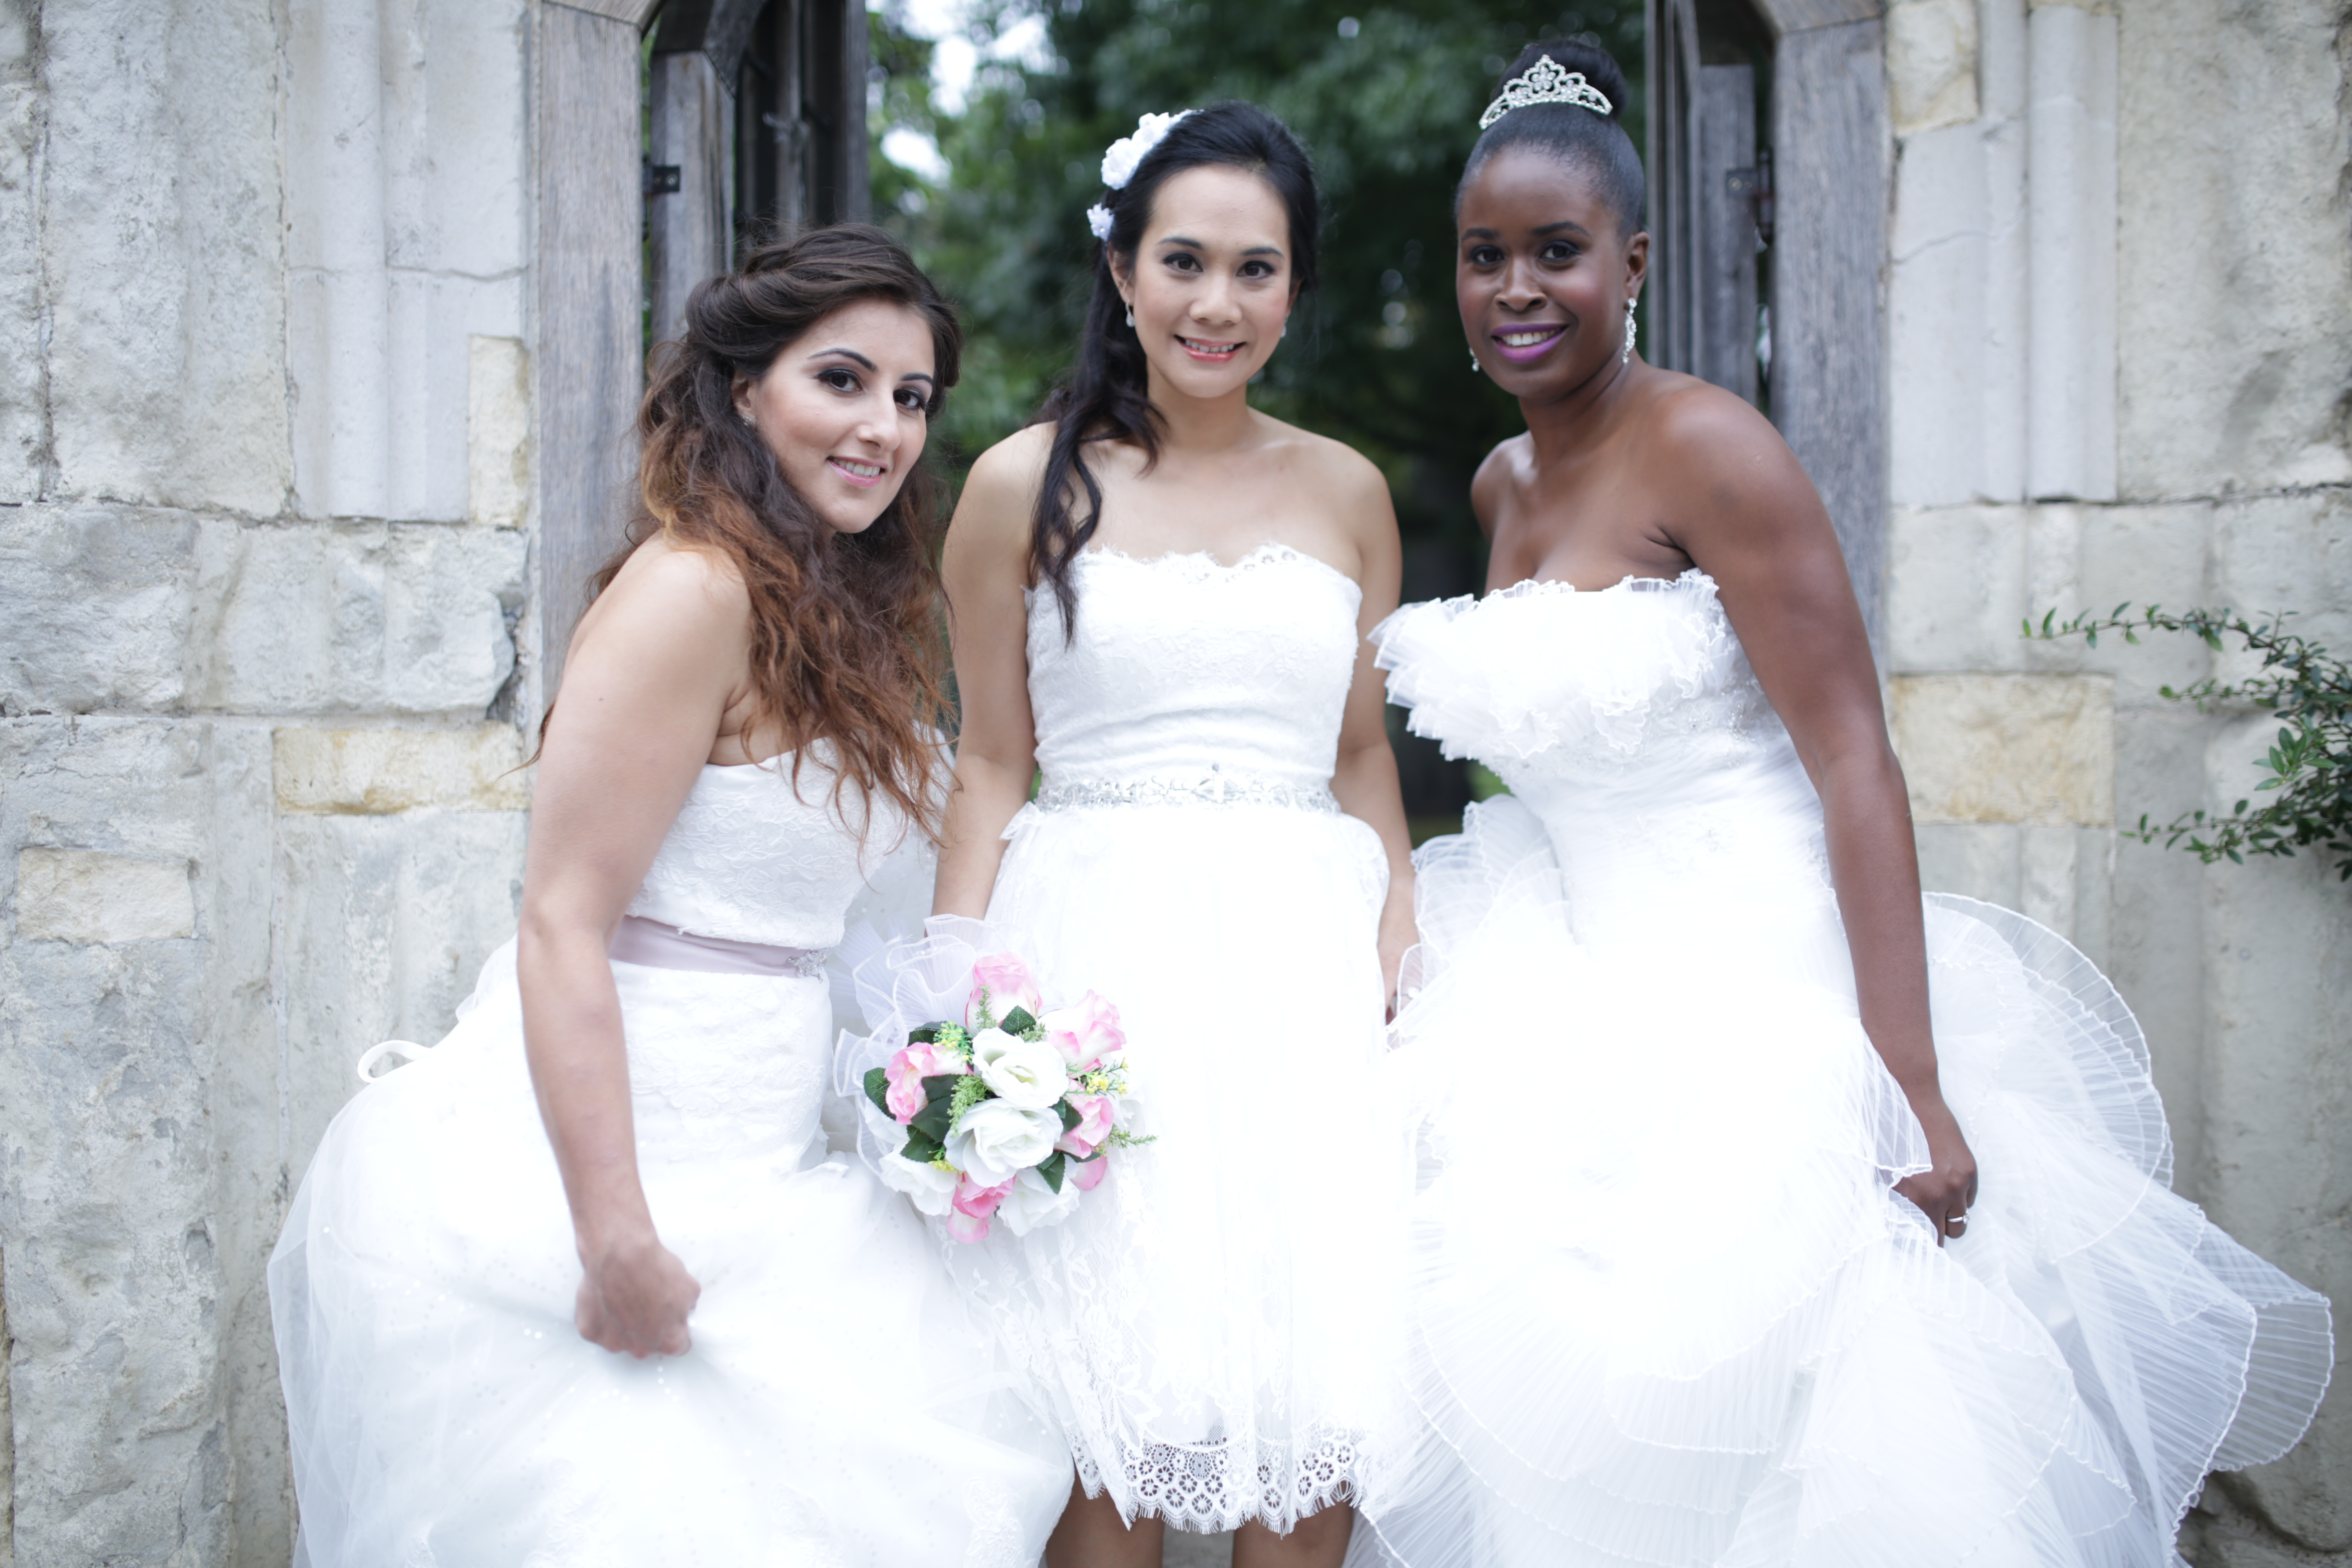 Photo of women and dresses from The london bridal boutique wedding dresses in south london croydon. Dresses for beautiful brides, gorgeous bridesmaids, cheap wedding dresses, budget wedding dresses, well priced